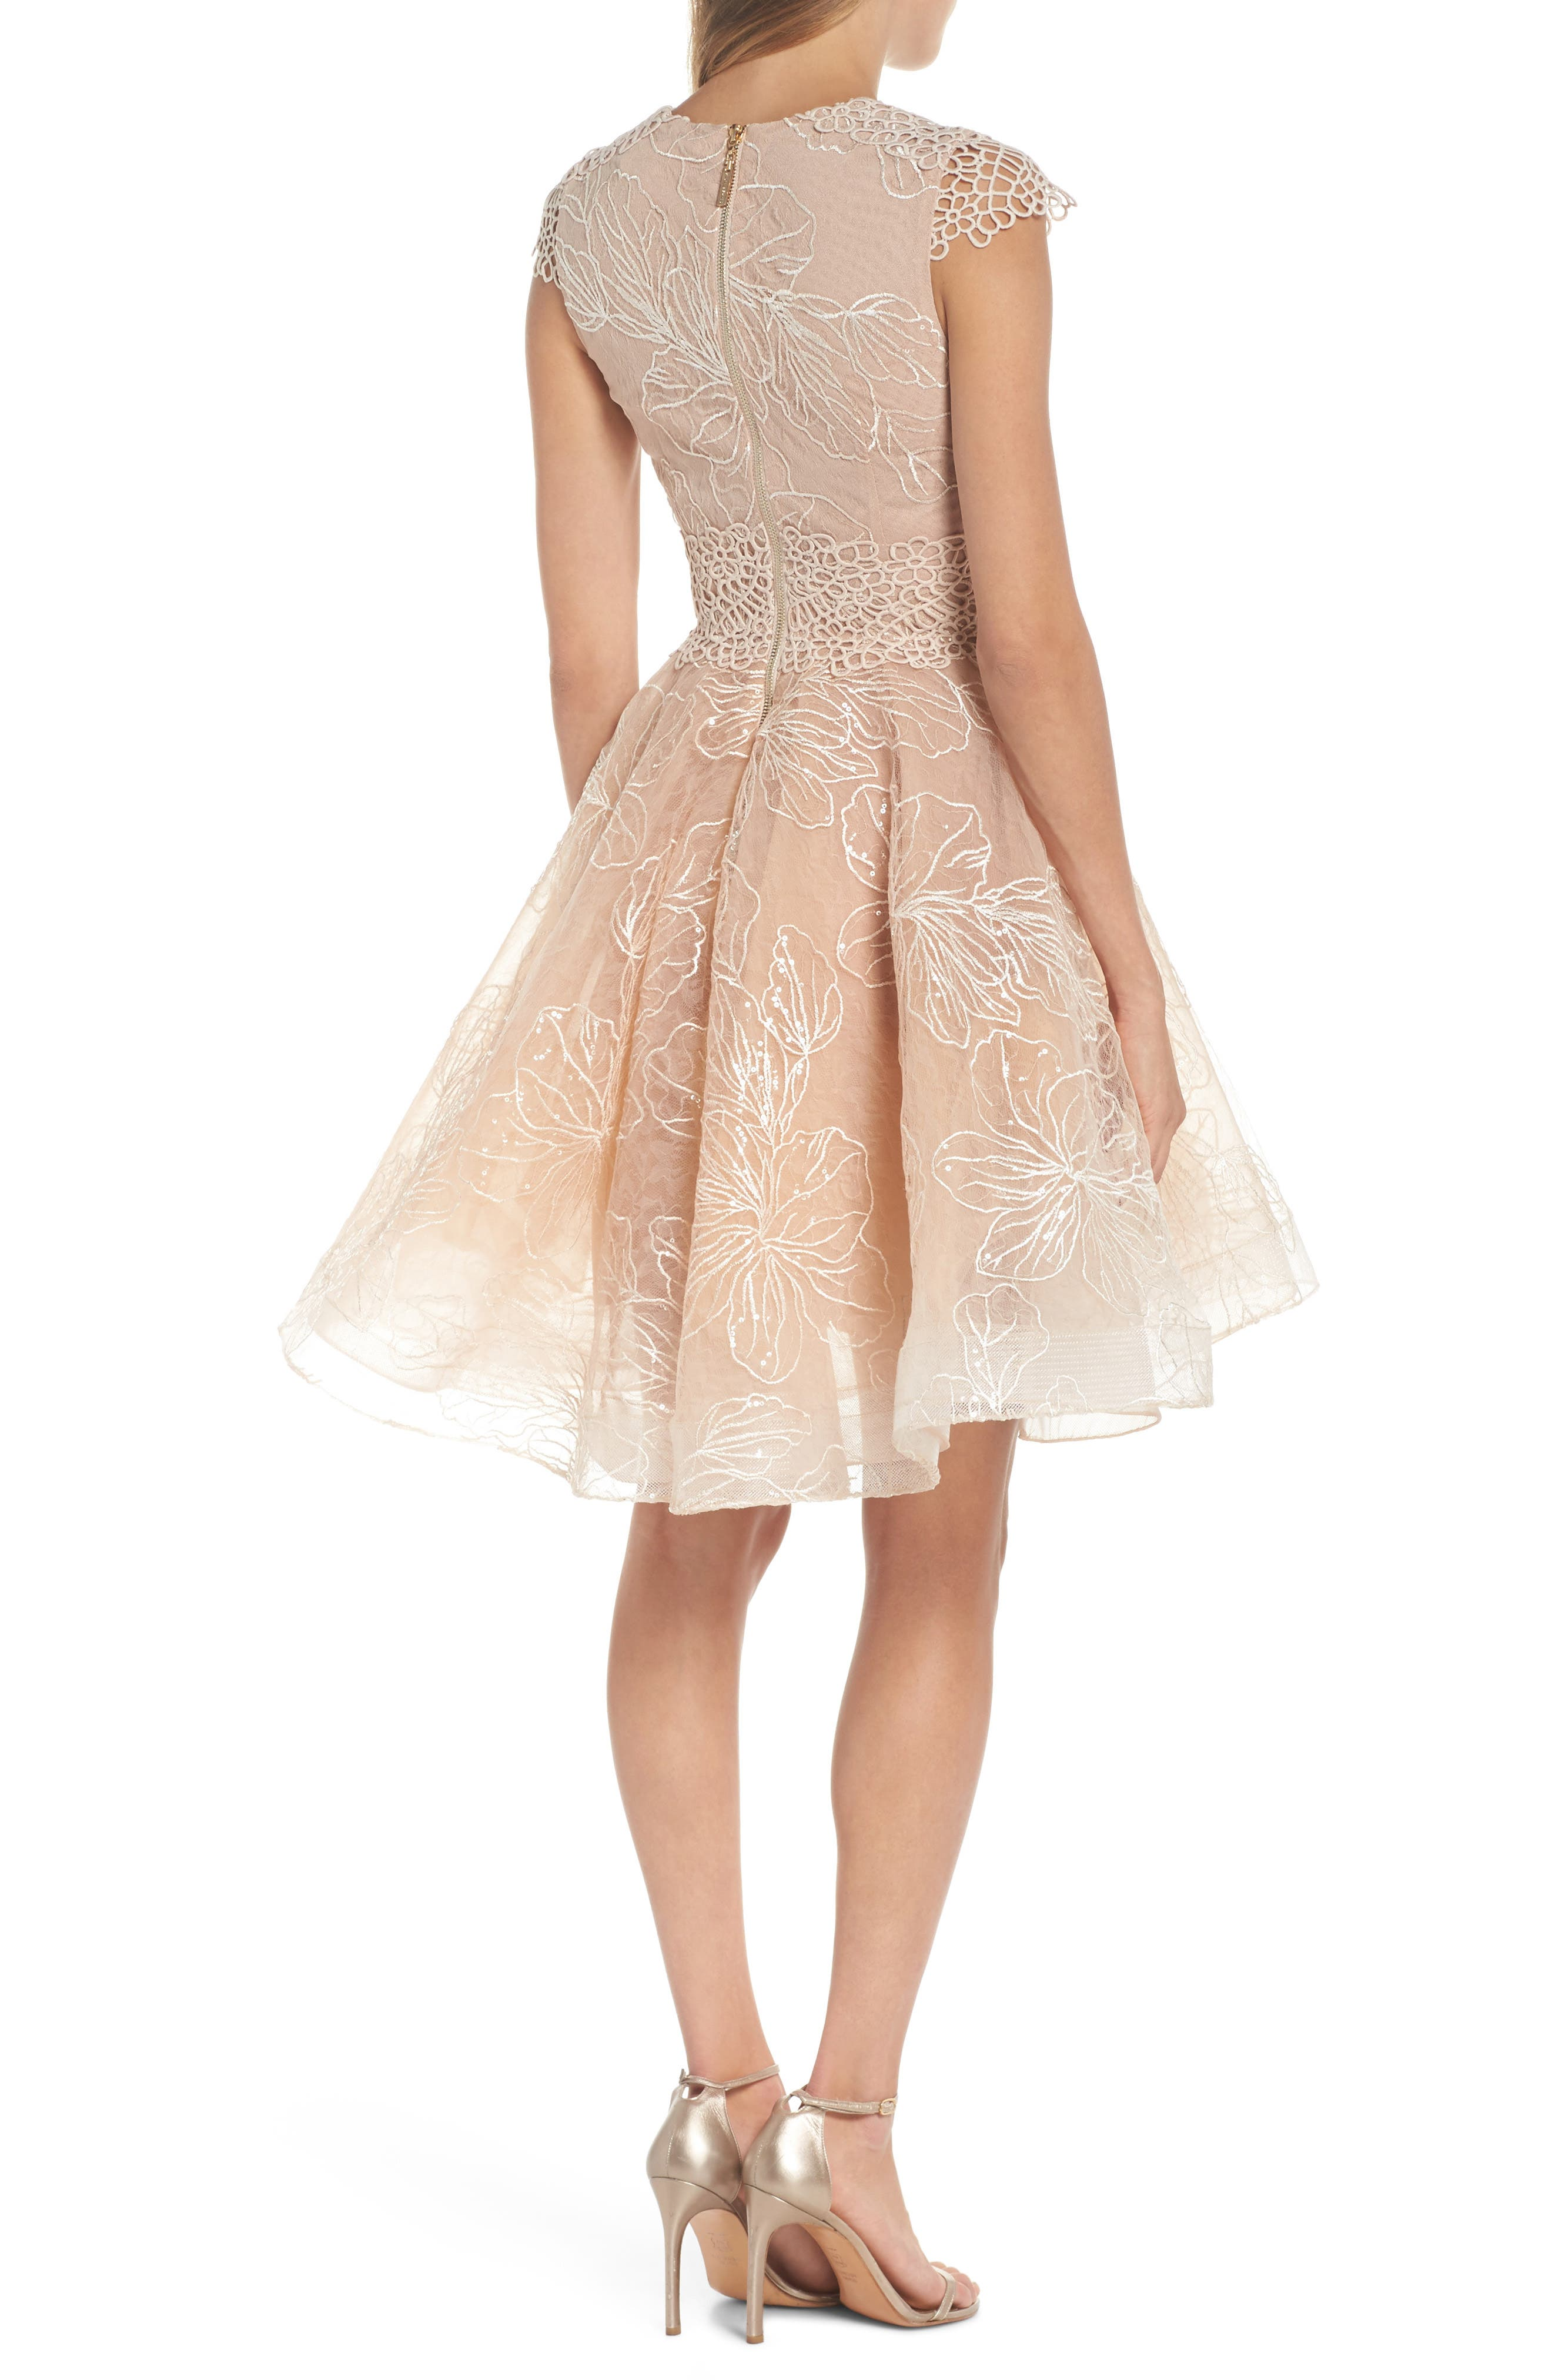 Fiore Sequin Fit & Flare Dress,                             Alternate thumbnail 2, color,                             250